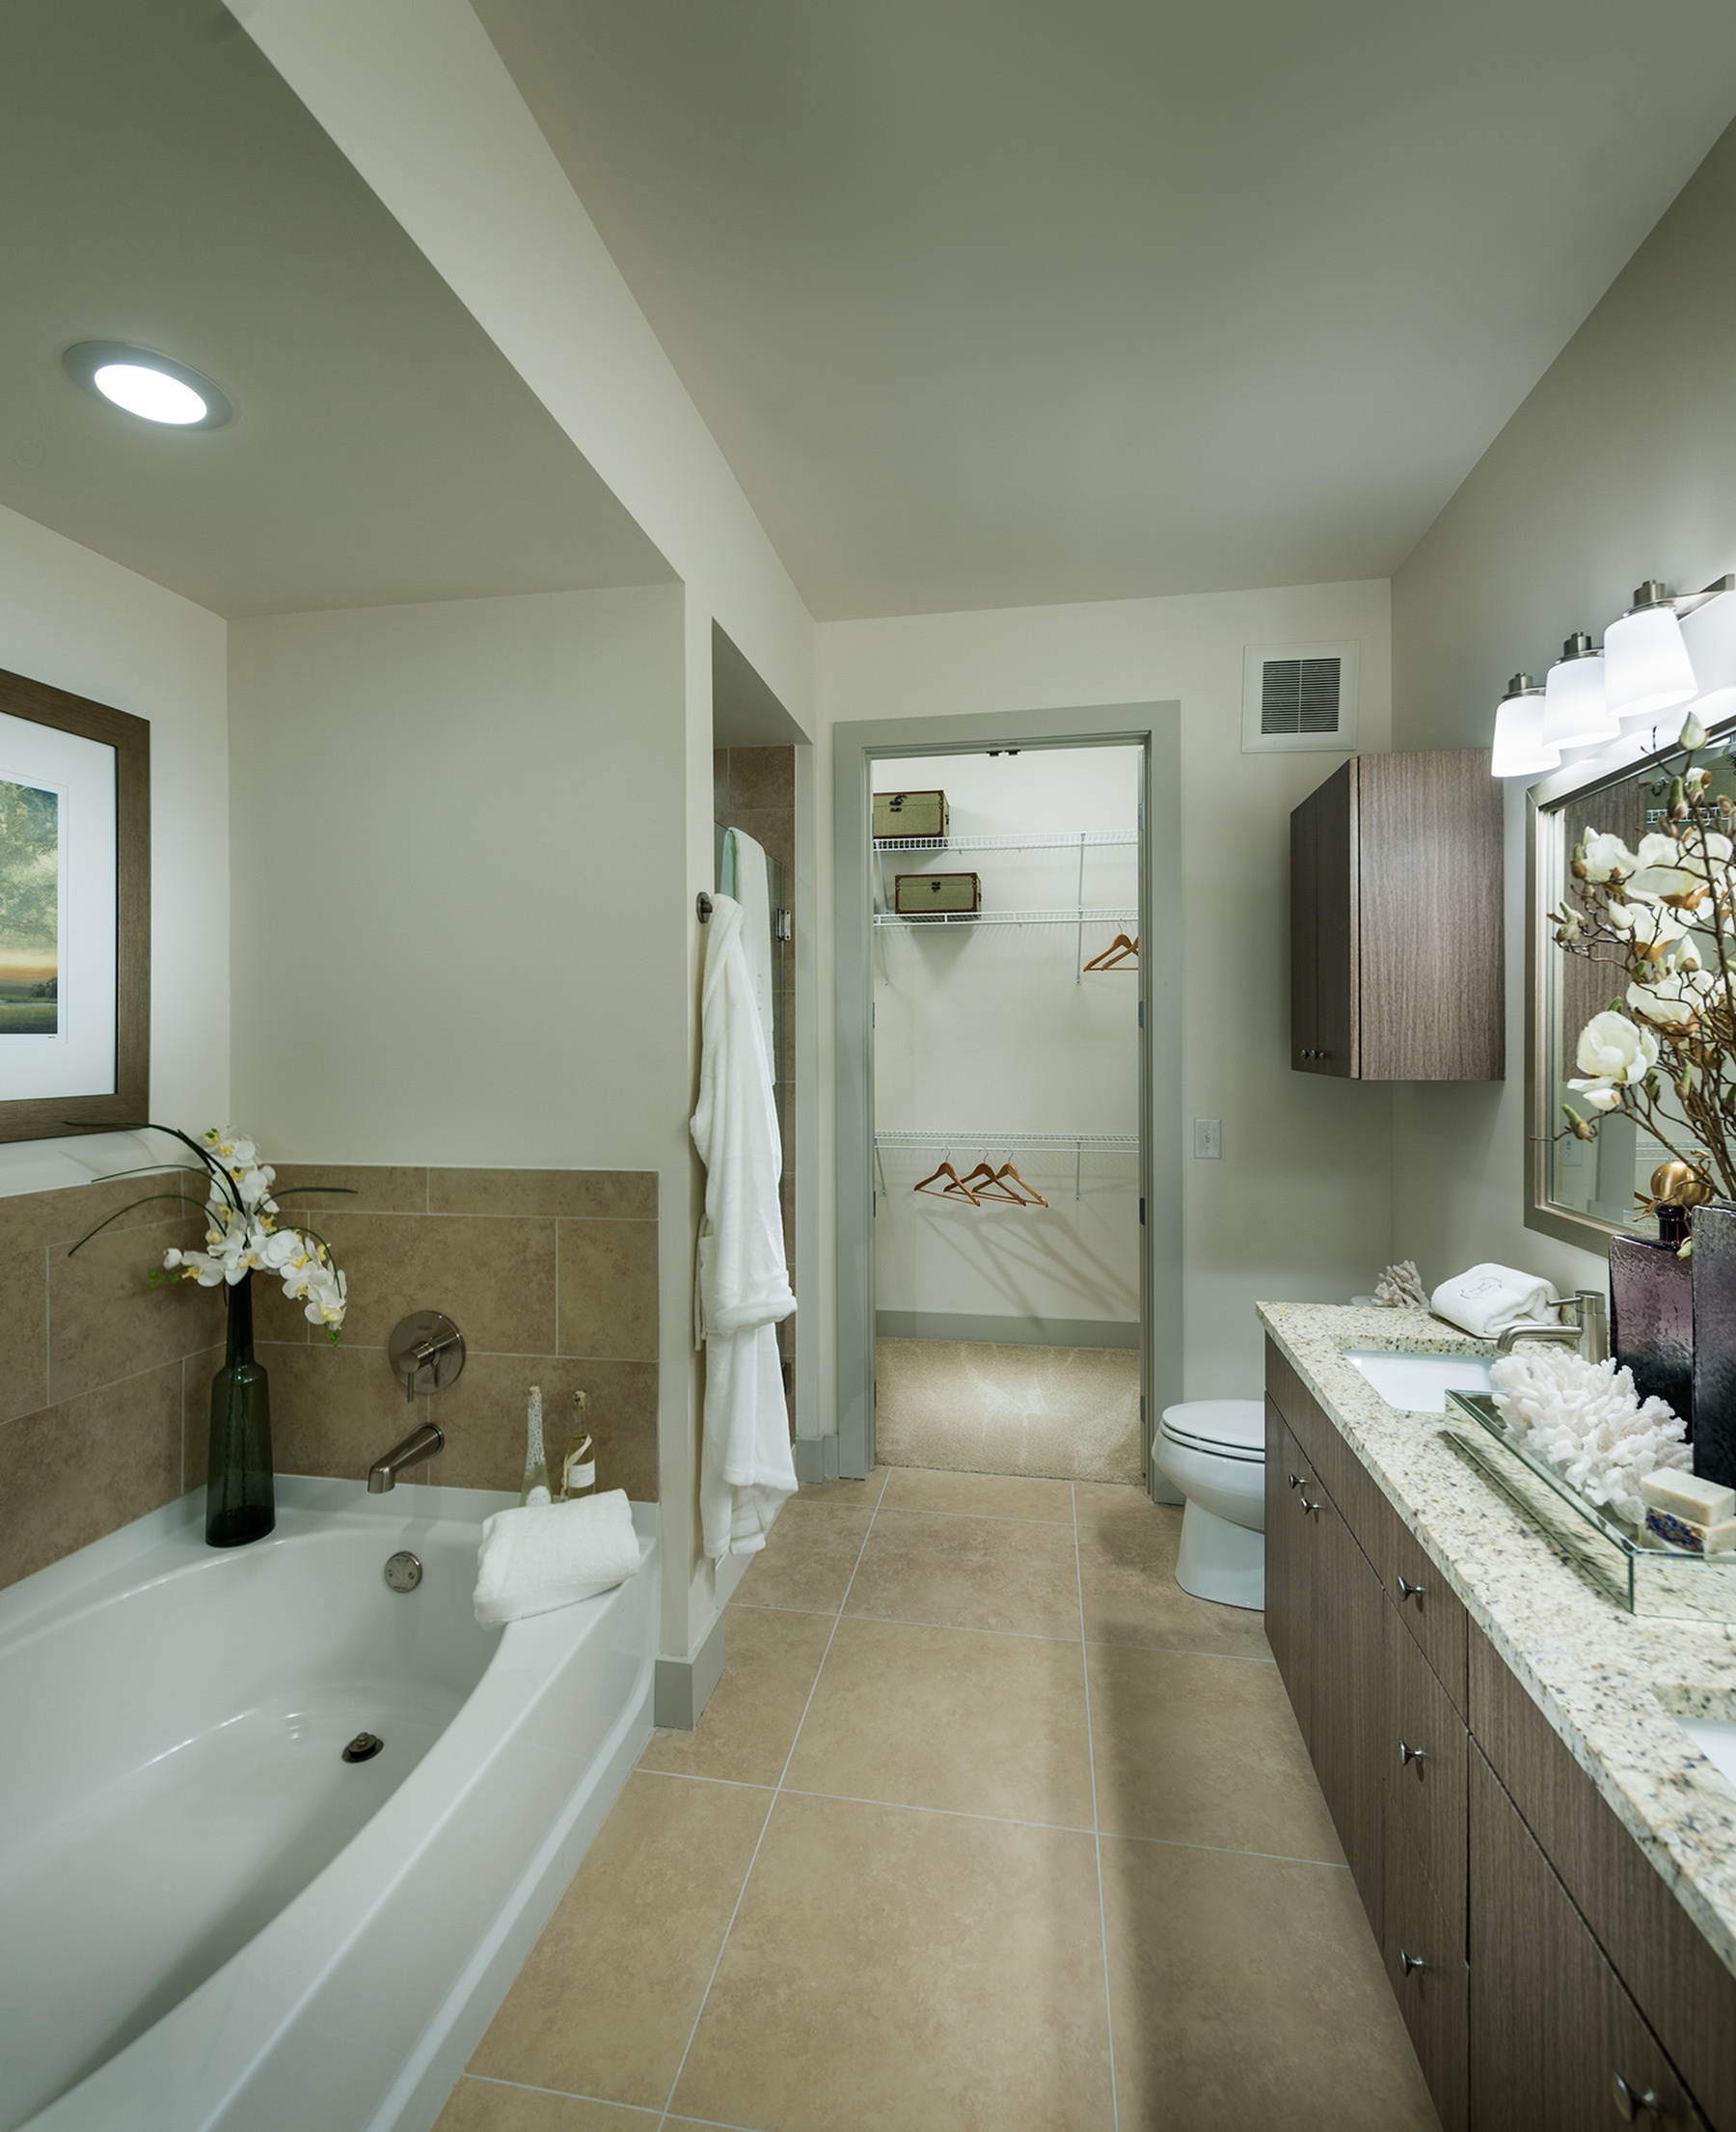 Image of Spa-inspired bathrooms with large soaking tub for Hanover North Broad